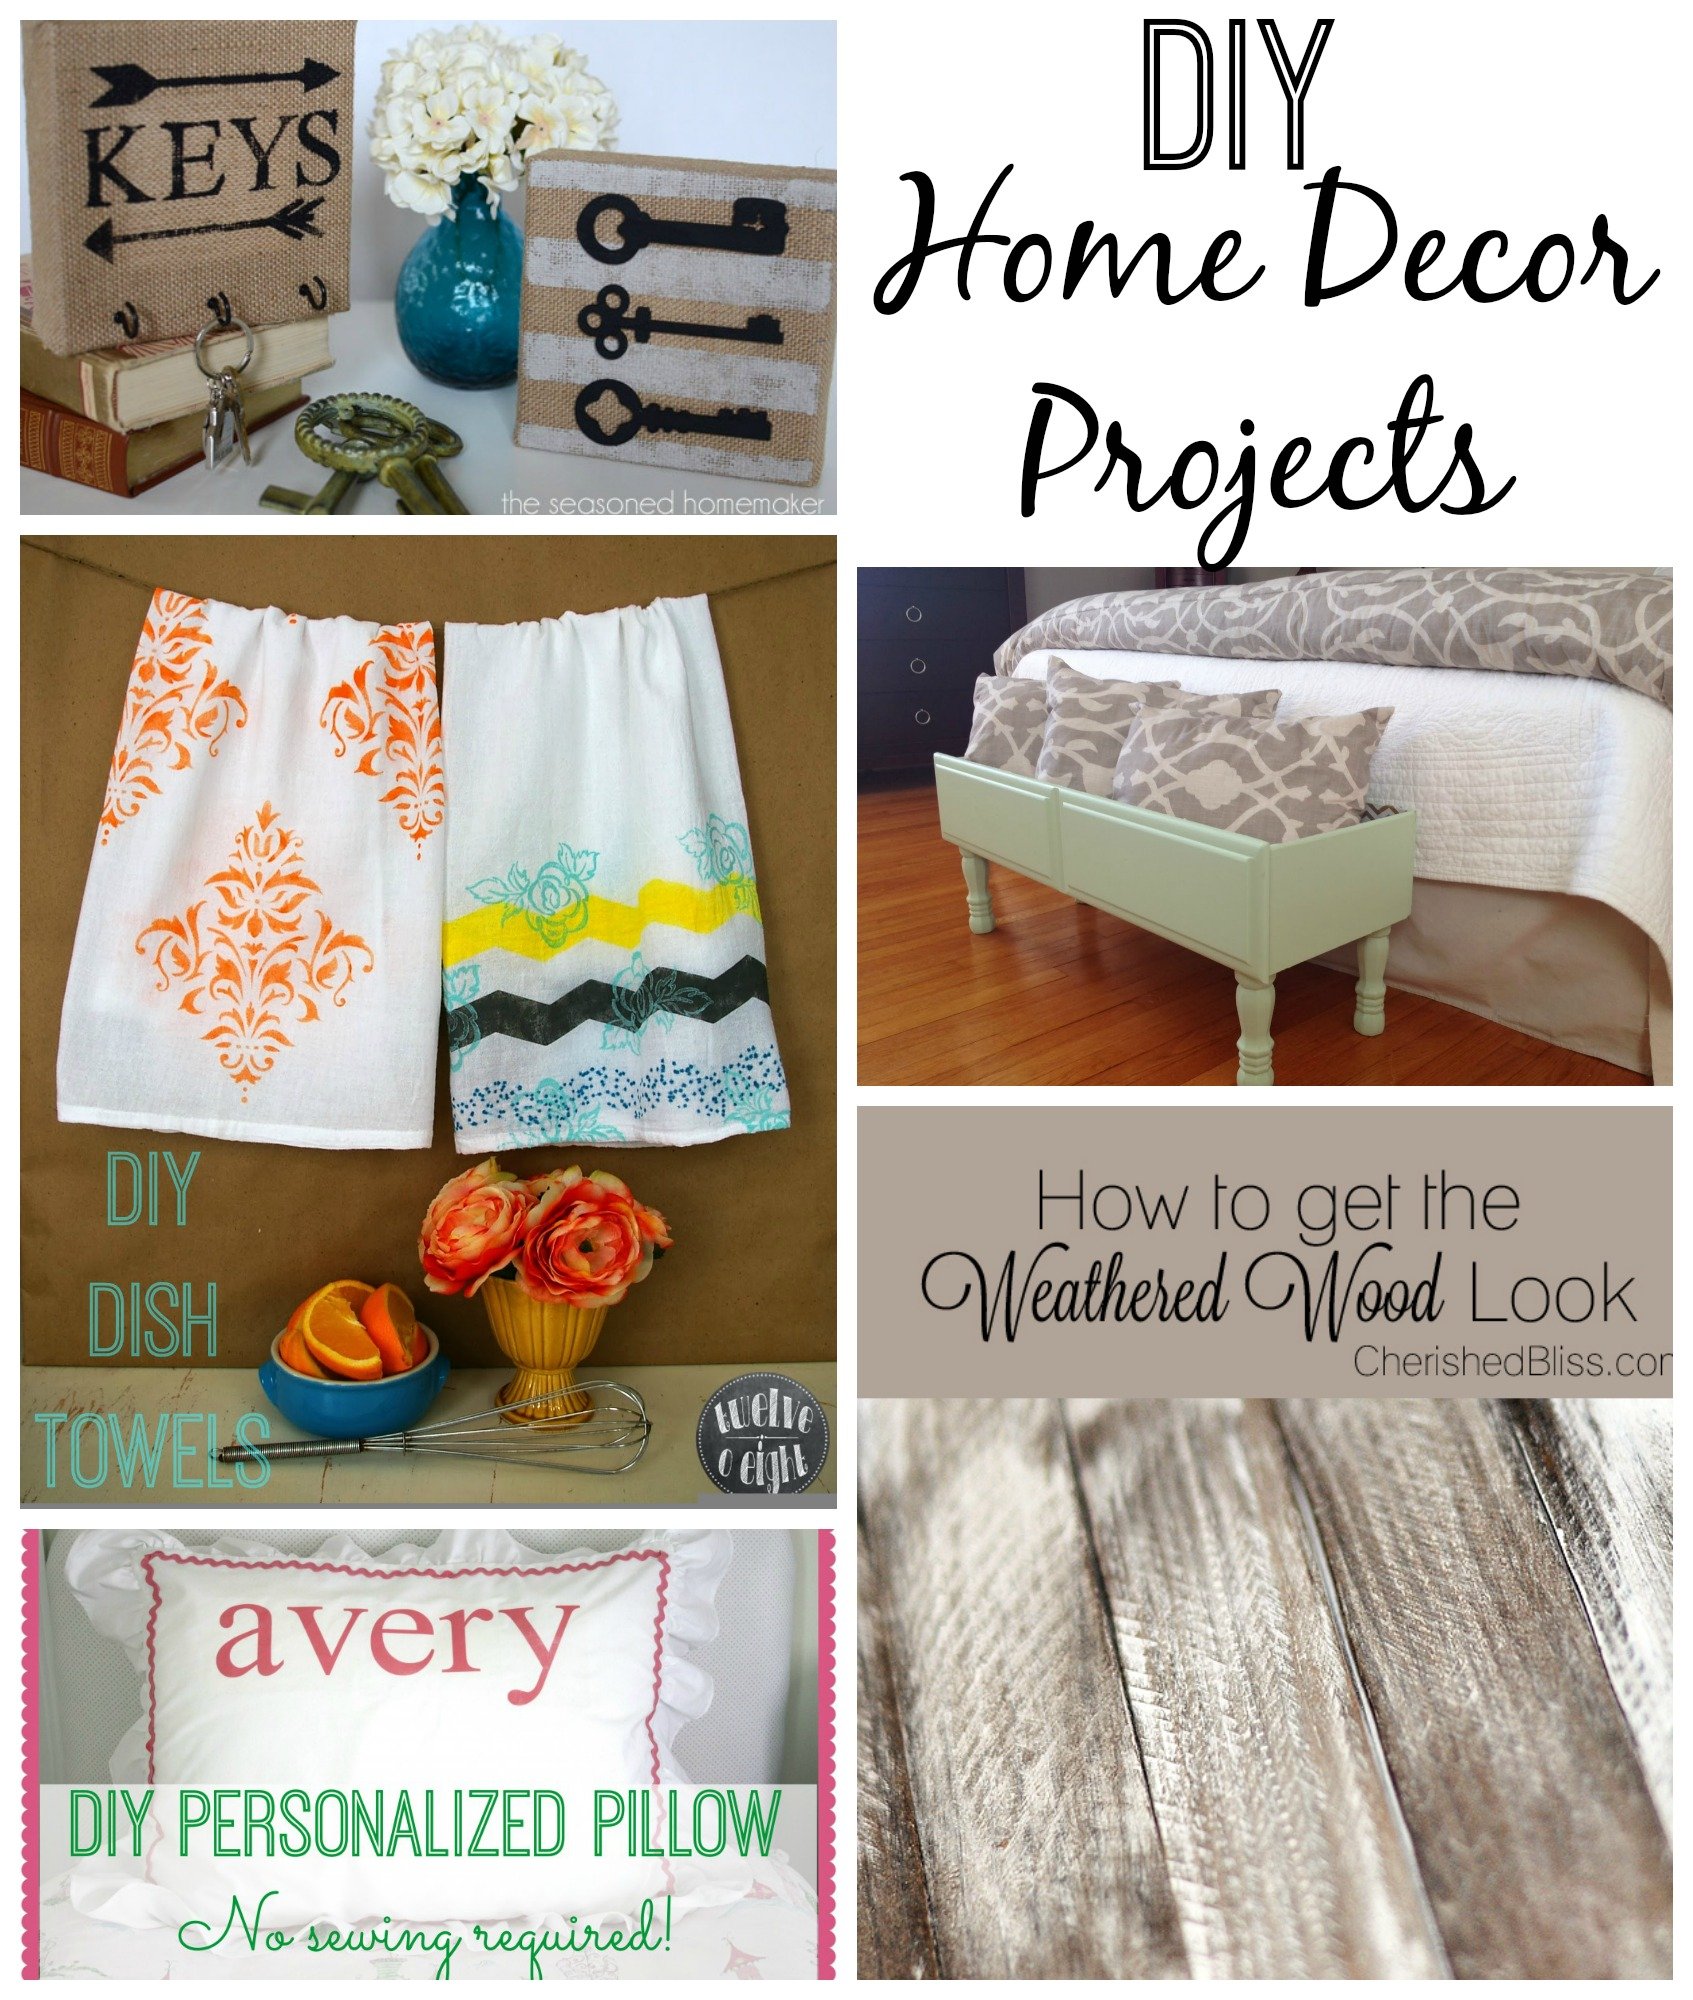 Home Design Ideas Build: DIY-Home-Decor-Projects.jpg